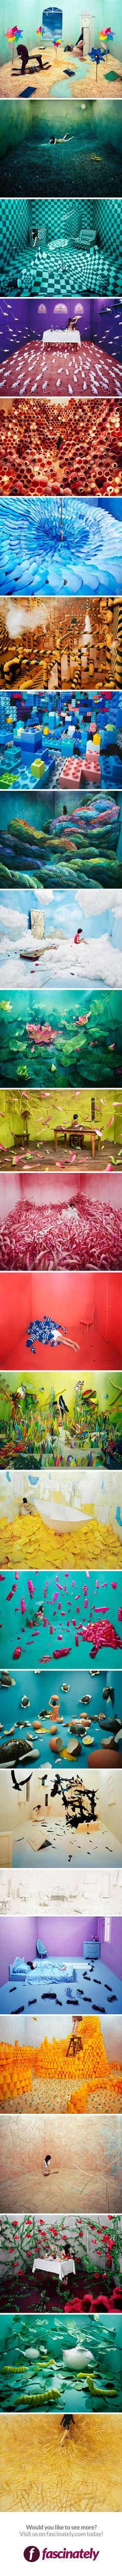 From starving artist to thriving artist, Jee Young Lee, makes magic with small spaces and ZERO photoshop!